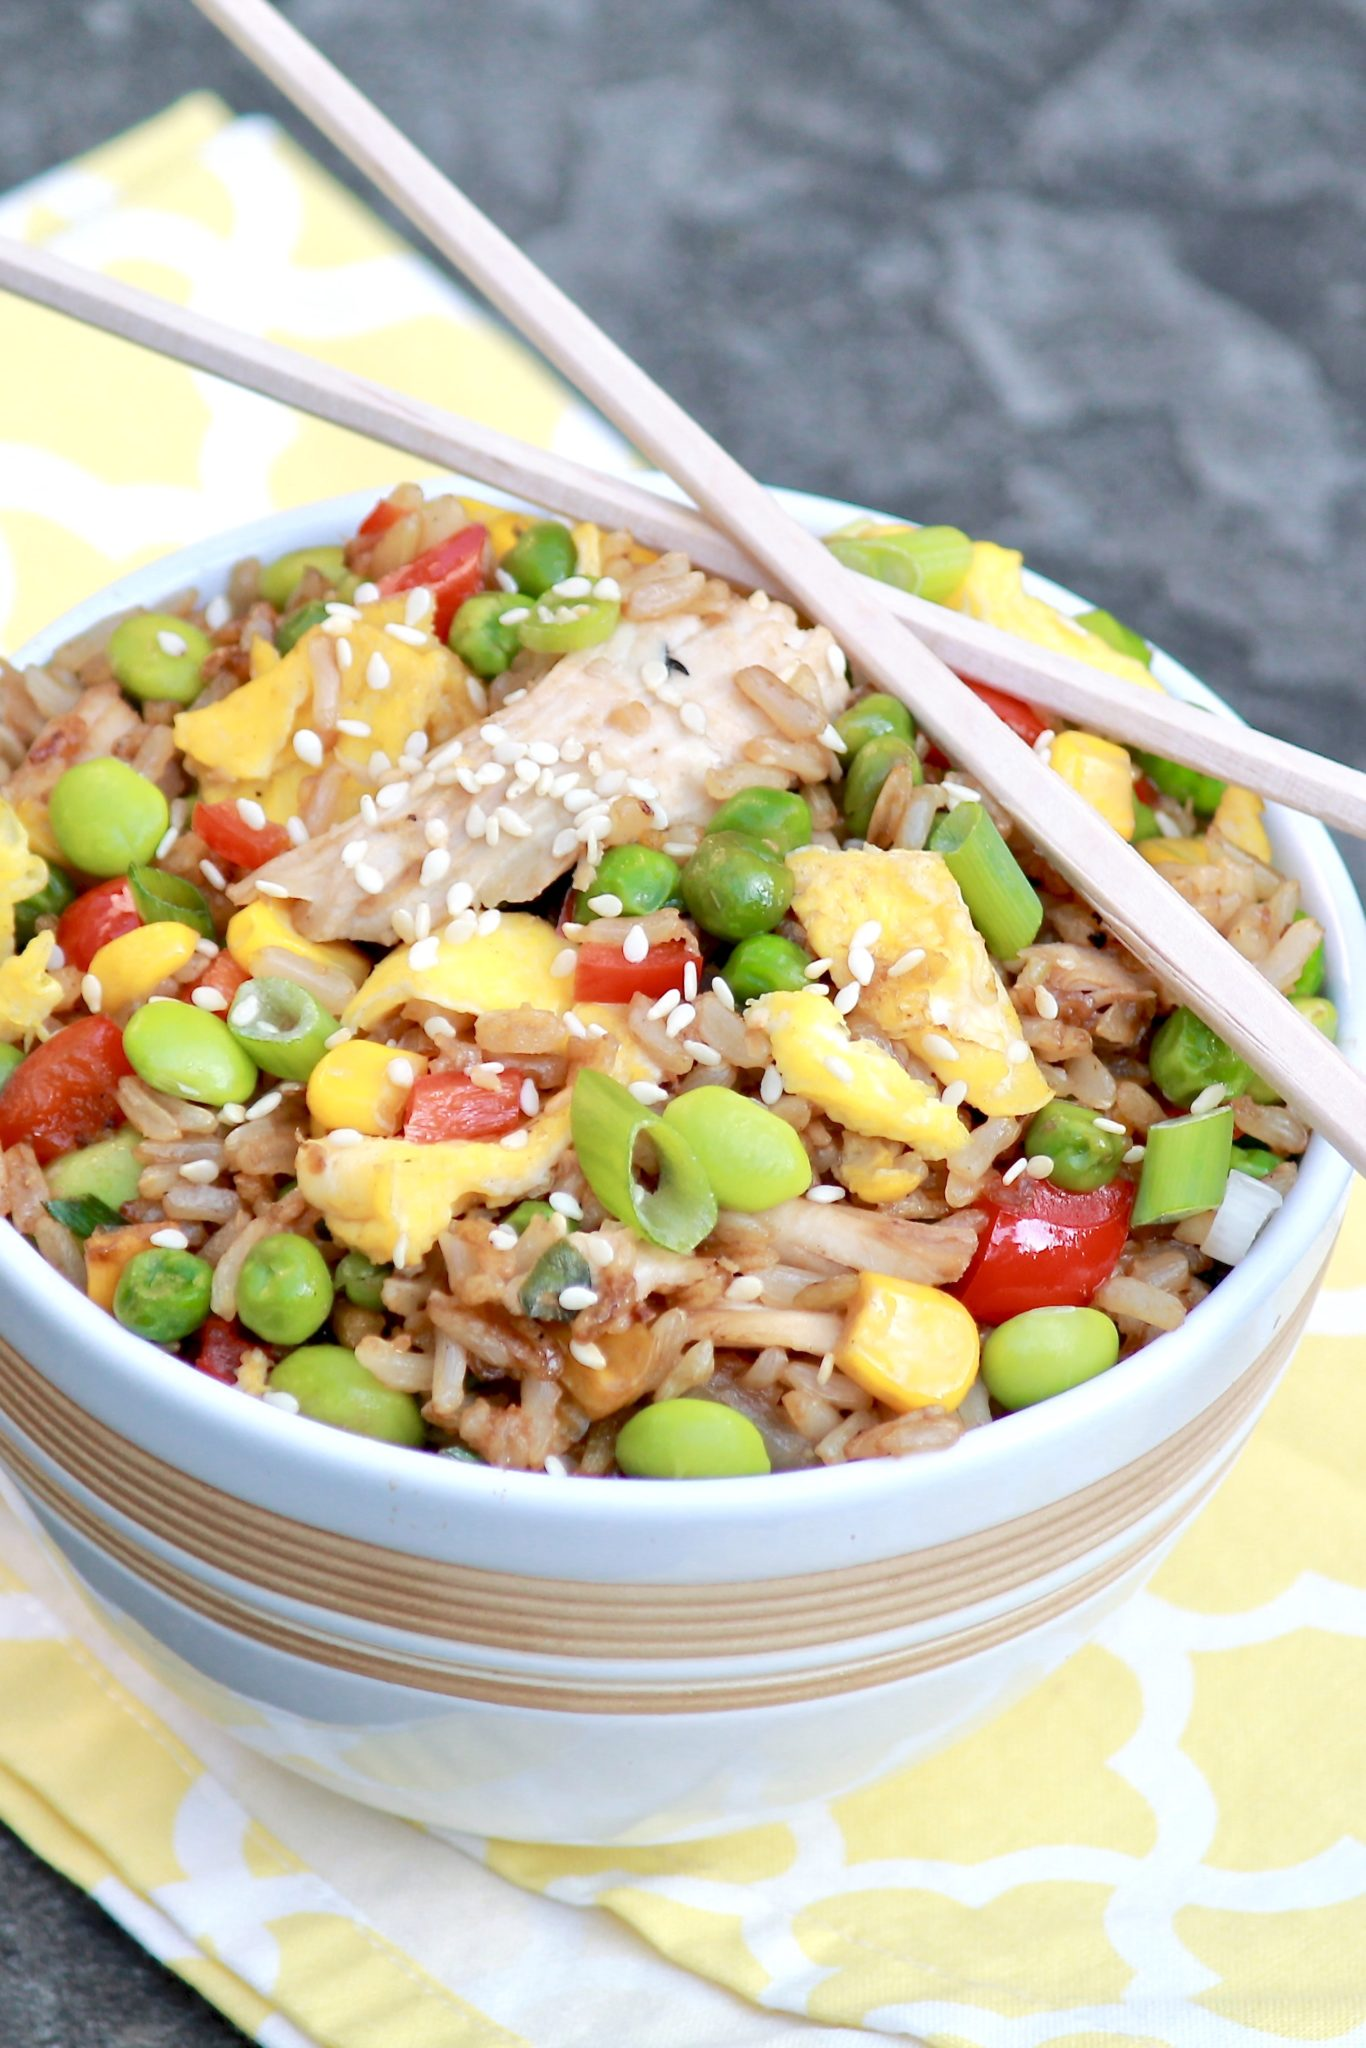 The flavor of homemade fried rice will rival your favoritetakeout version and be healthier, too. Make use of leftover rice and chicken for the easiest of meals.